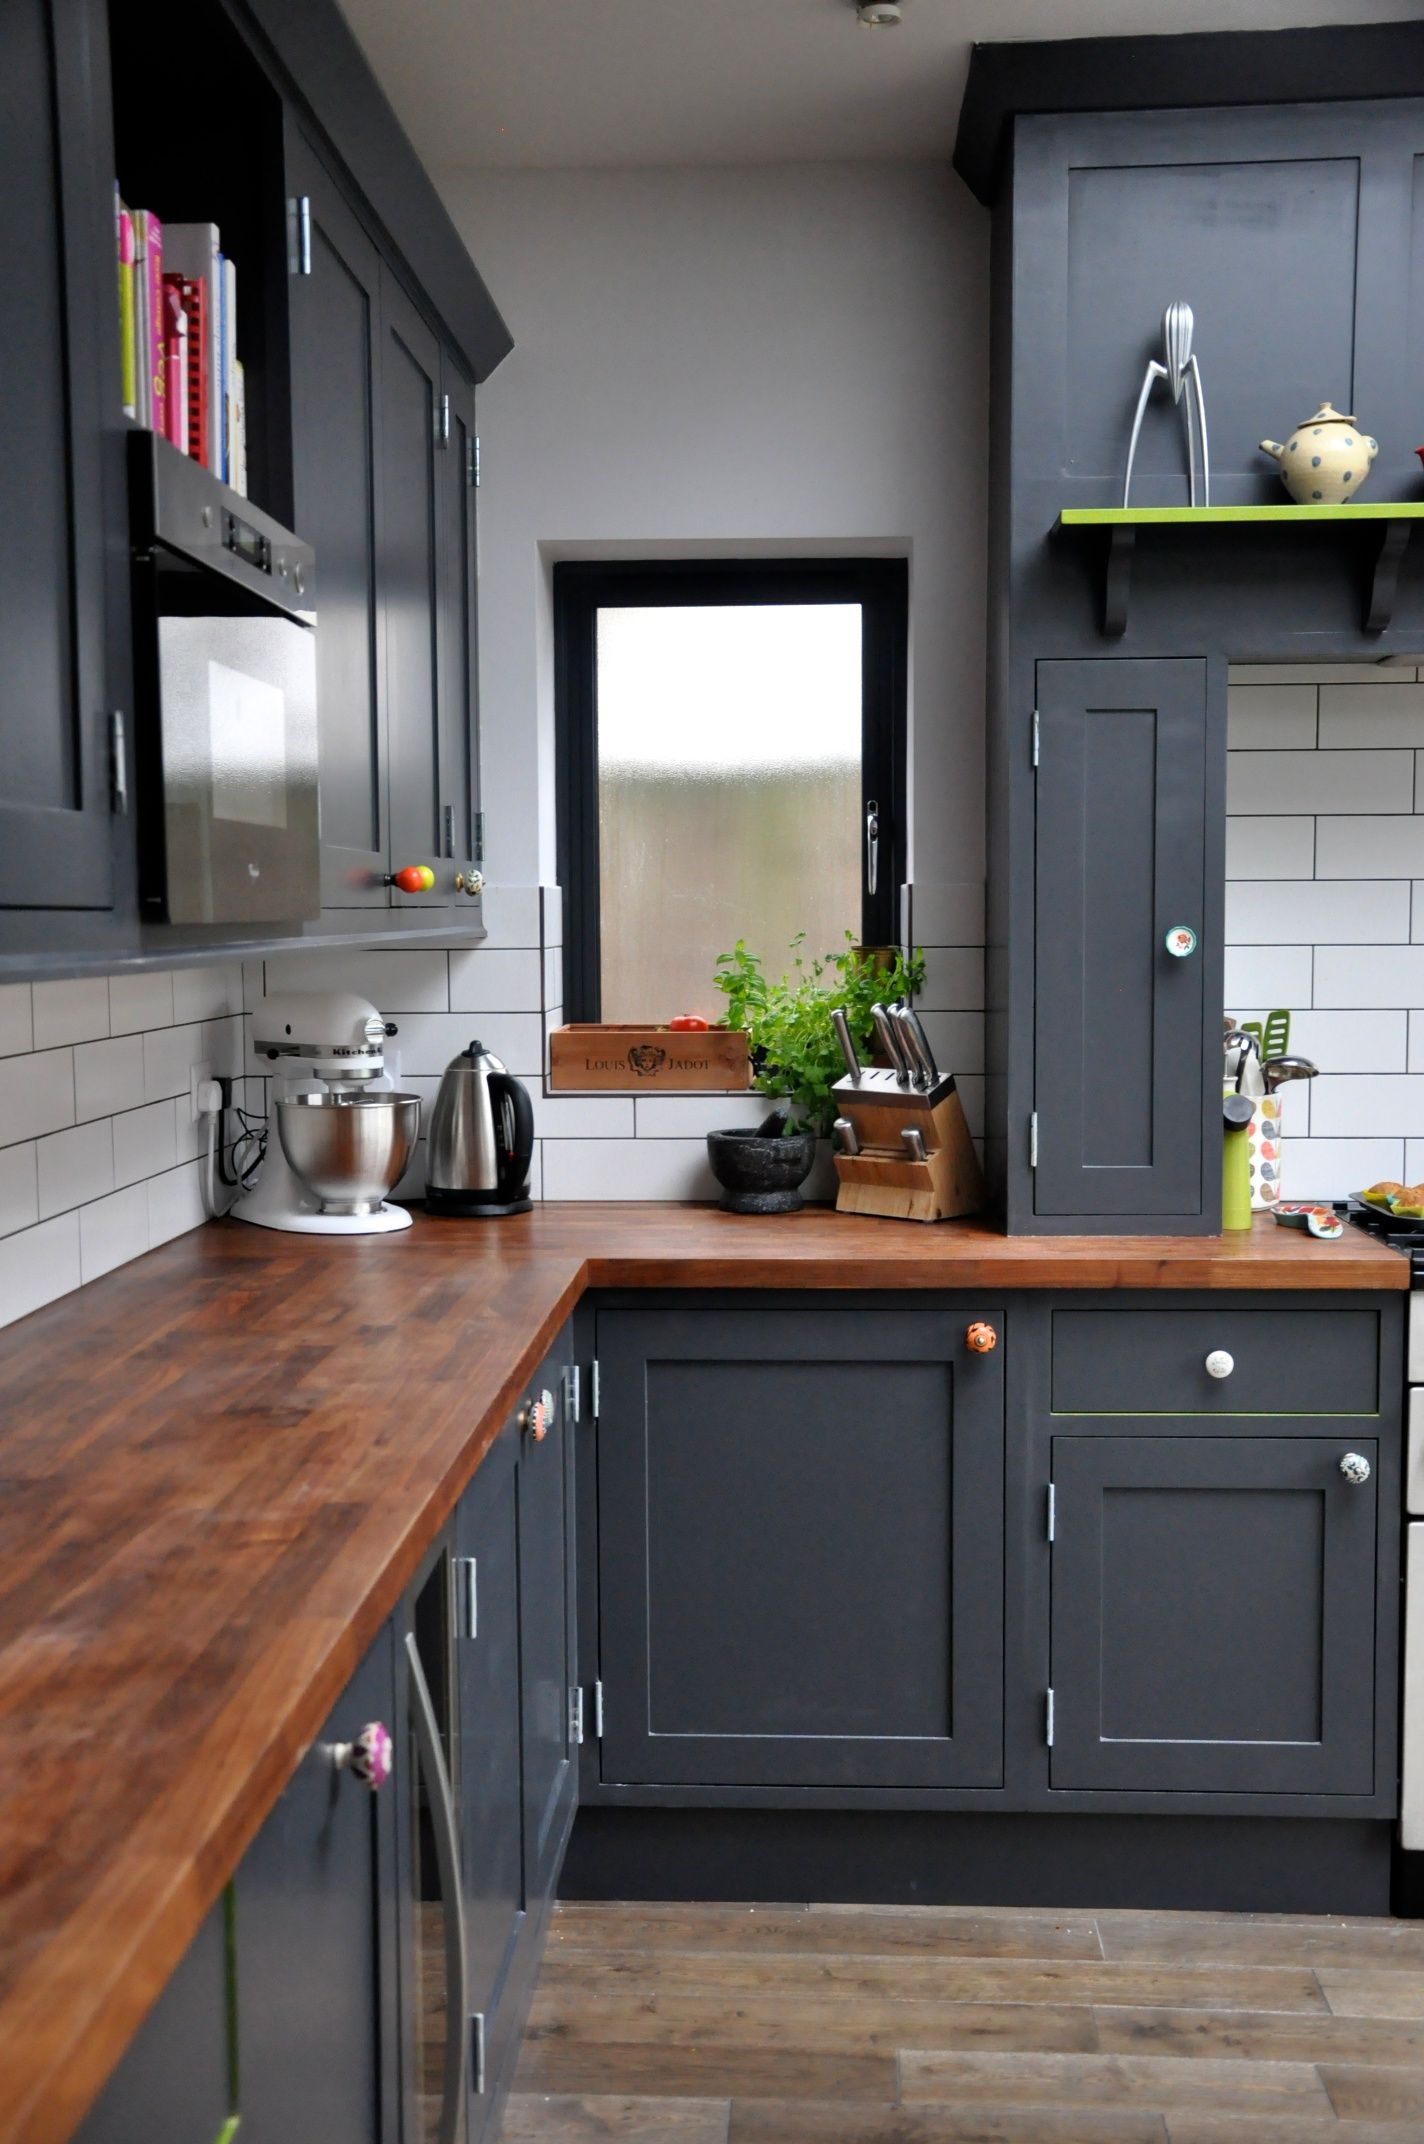 Designer Kitchens Dark Cabinets Decorating With Black 13 Ways To Use Dark Colors In Your Home